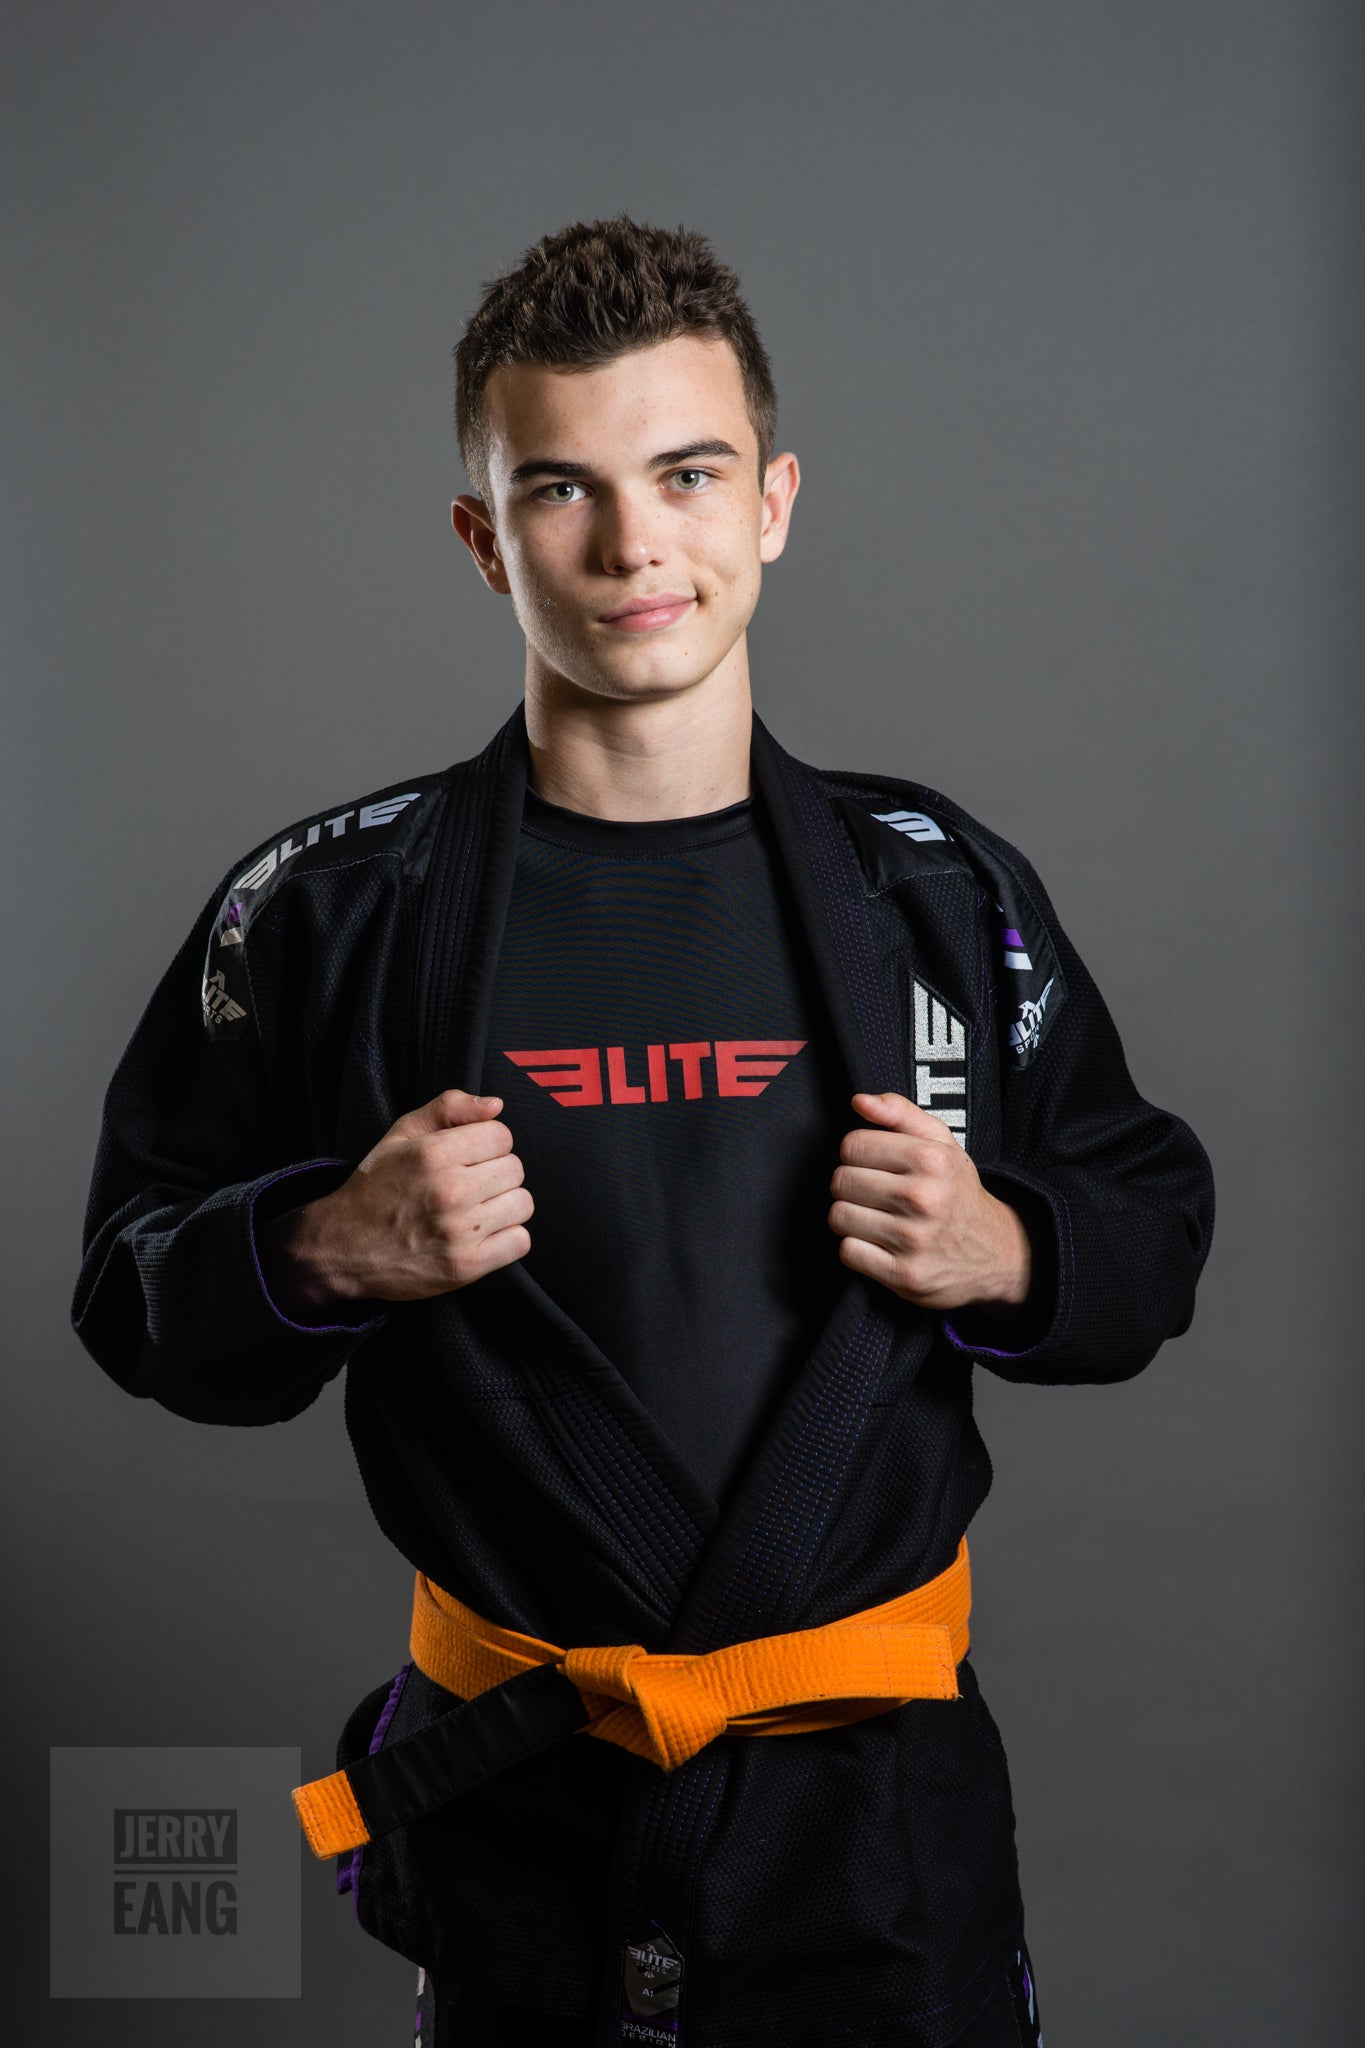 Elite Sports Team Elite Bjj Fighter James Riley Marroquin  Image2